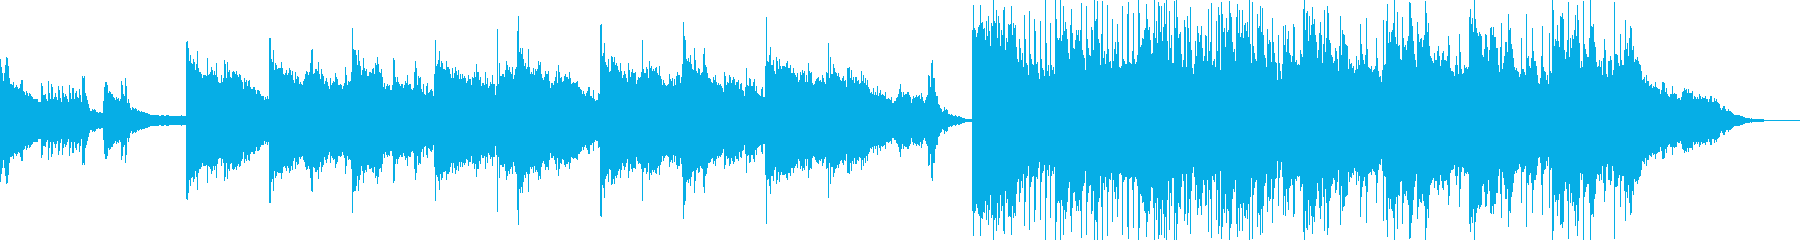 Japanese mythological and mysterious Japanese-style song's reproduced waveform